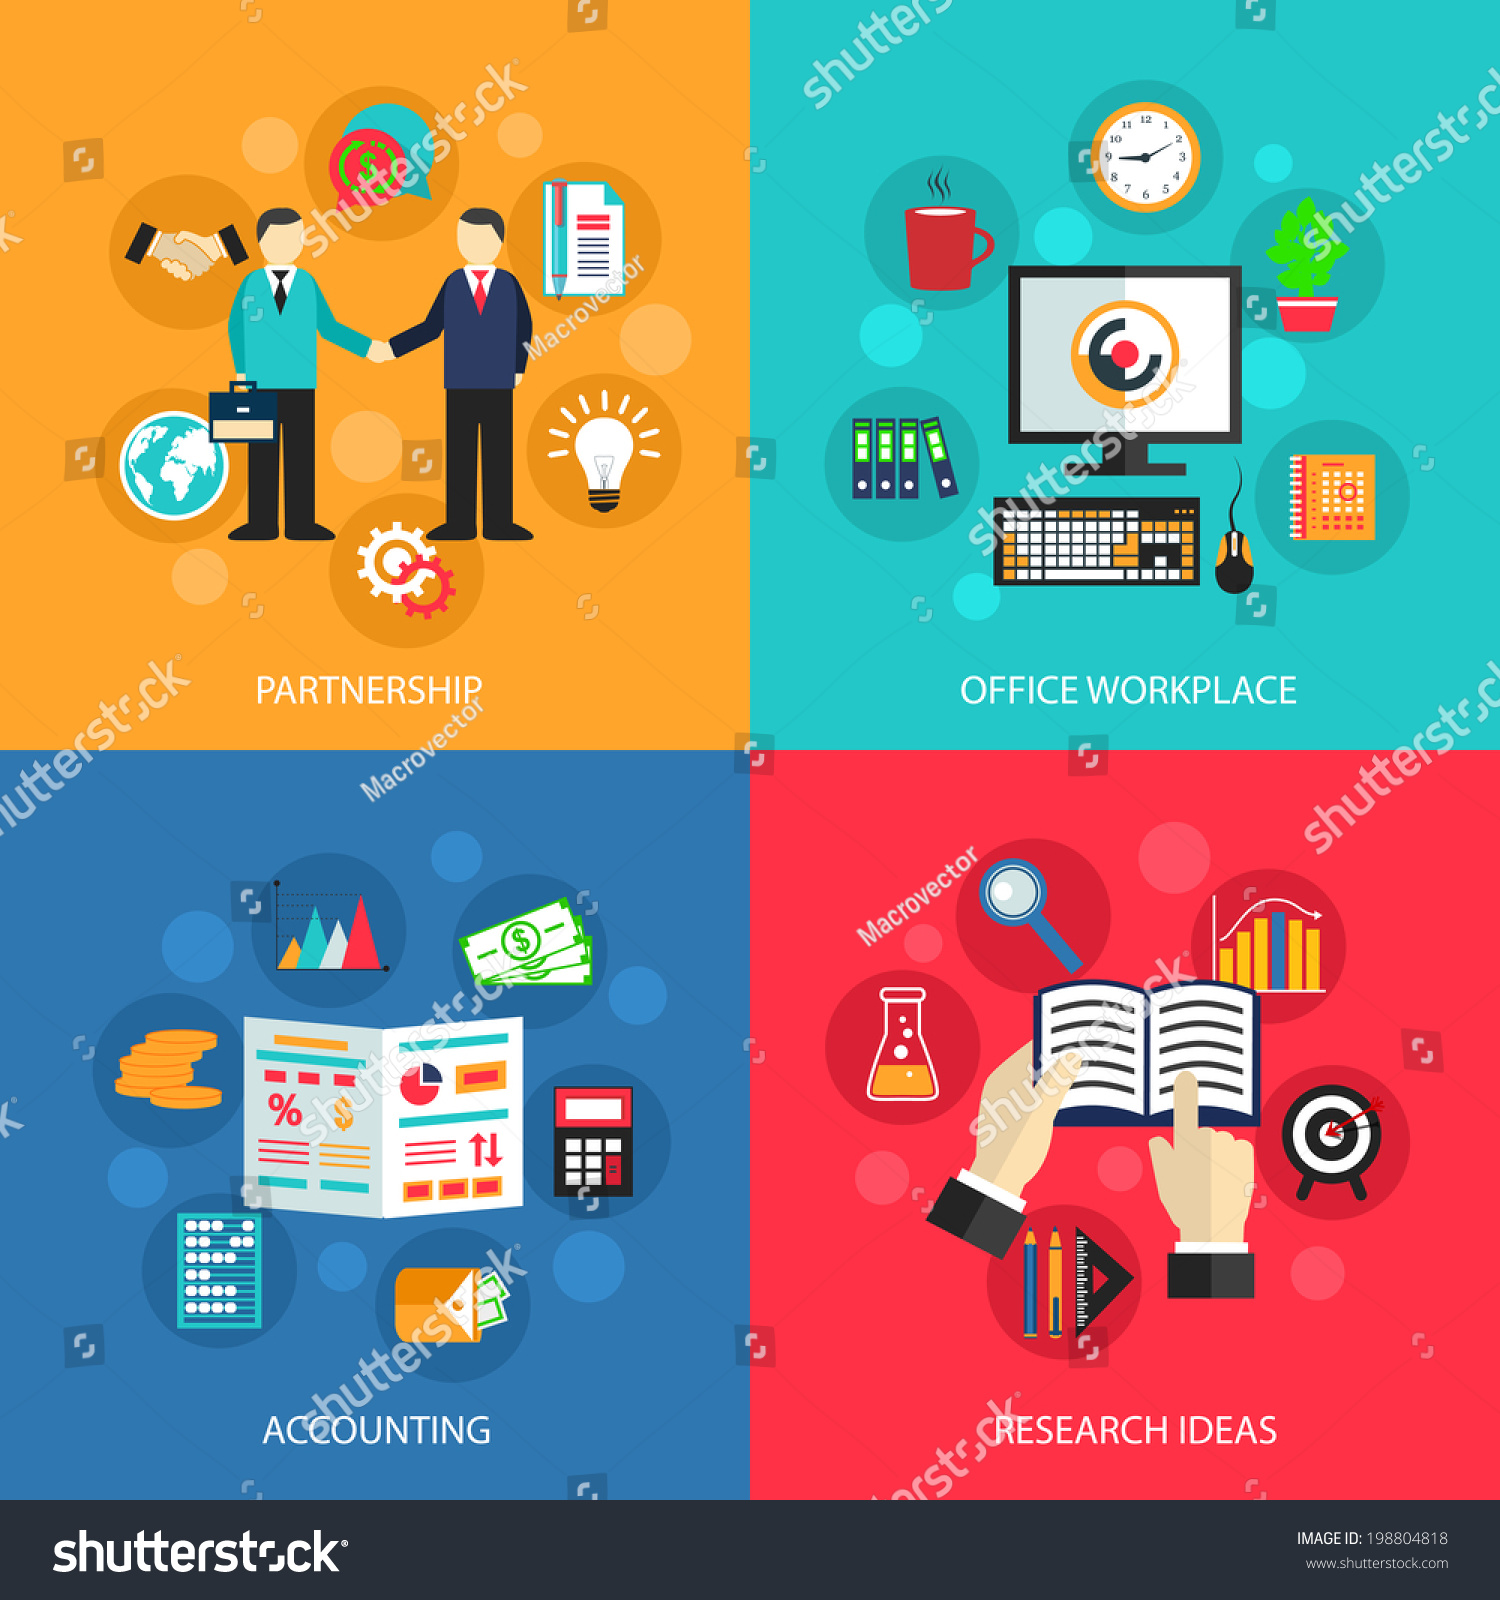 Web Design Project Ideas see the finished website Business Concept Flat Icons Set Of Partnership Office Meeting Accounting Workplace And Project Ideas For Infographics Design Web Elements Vector